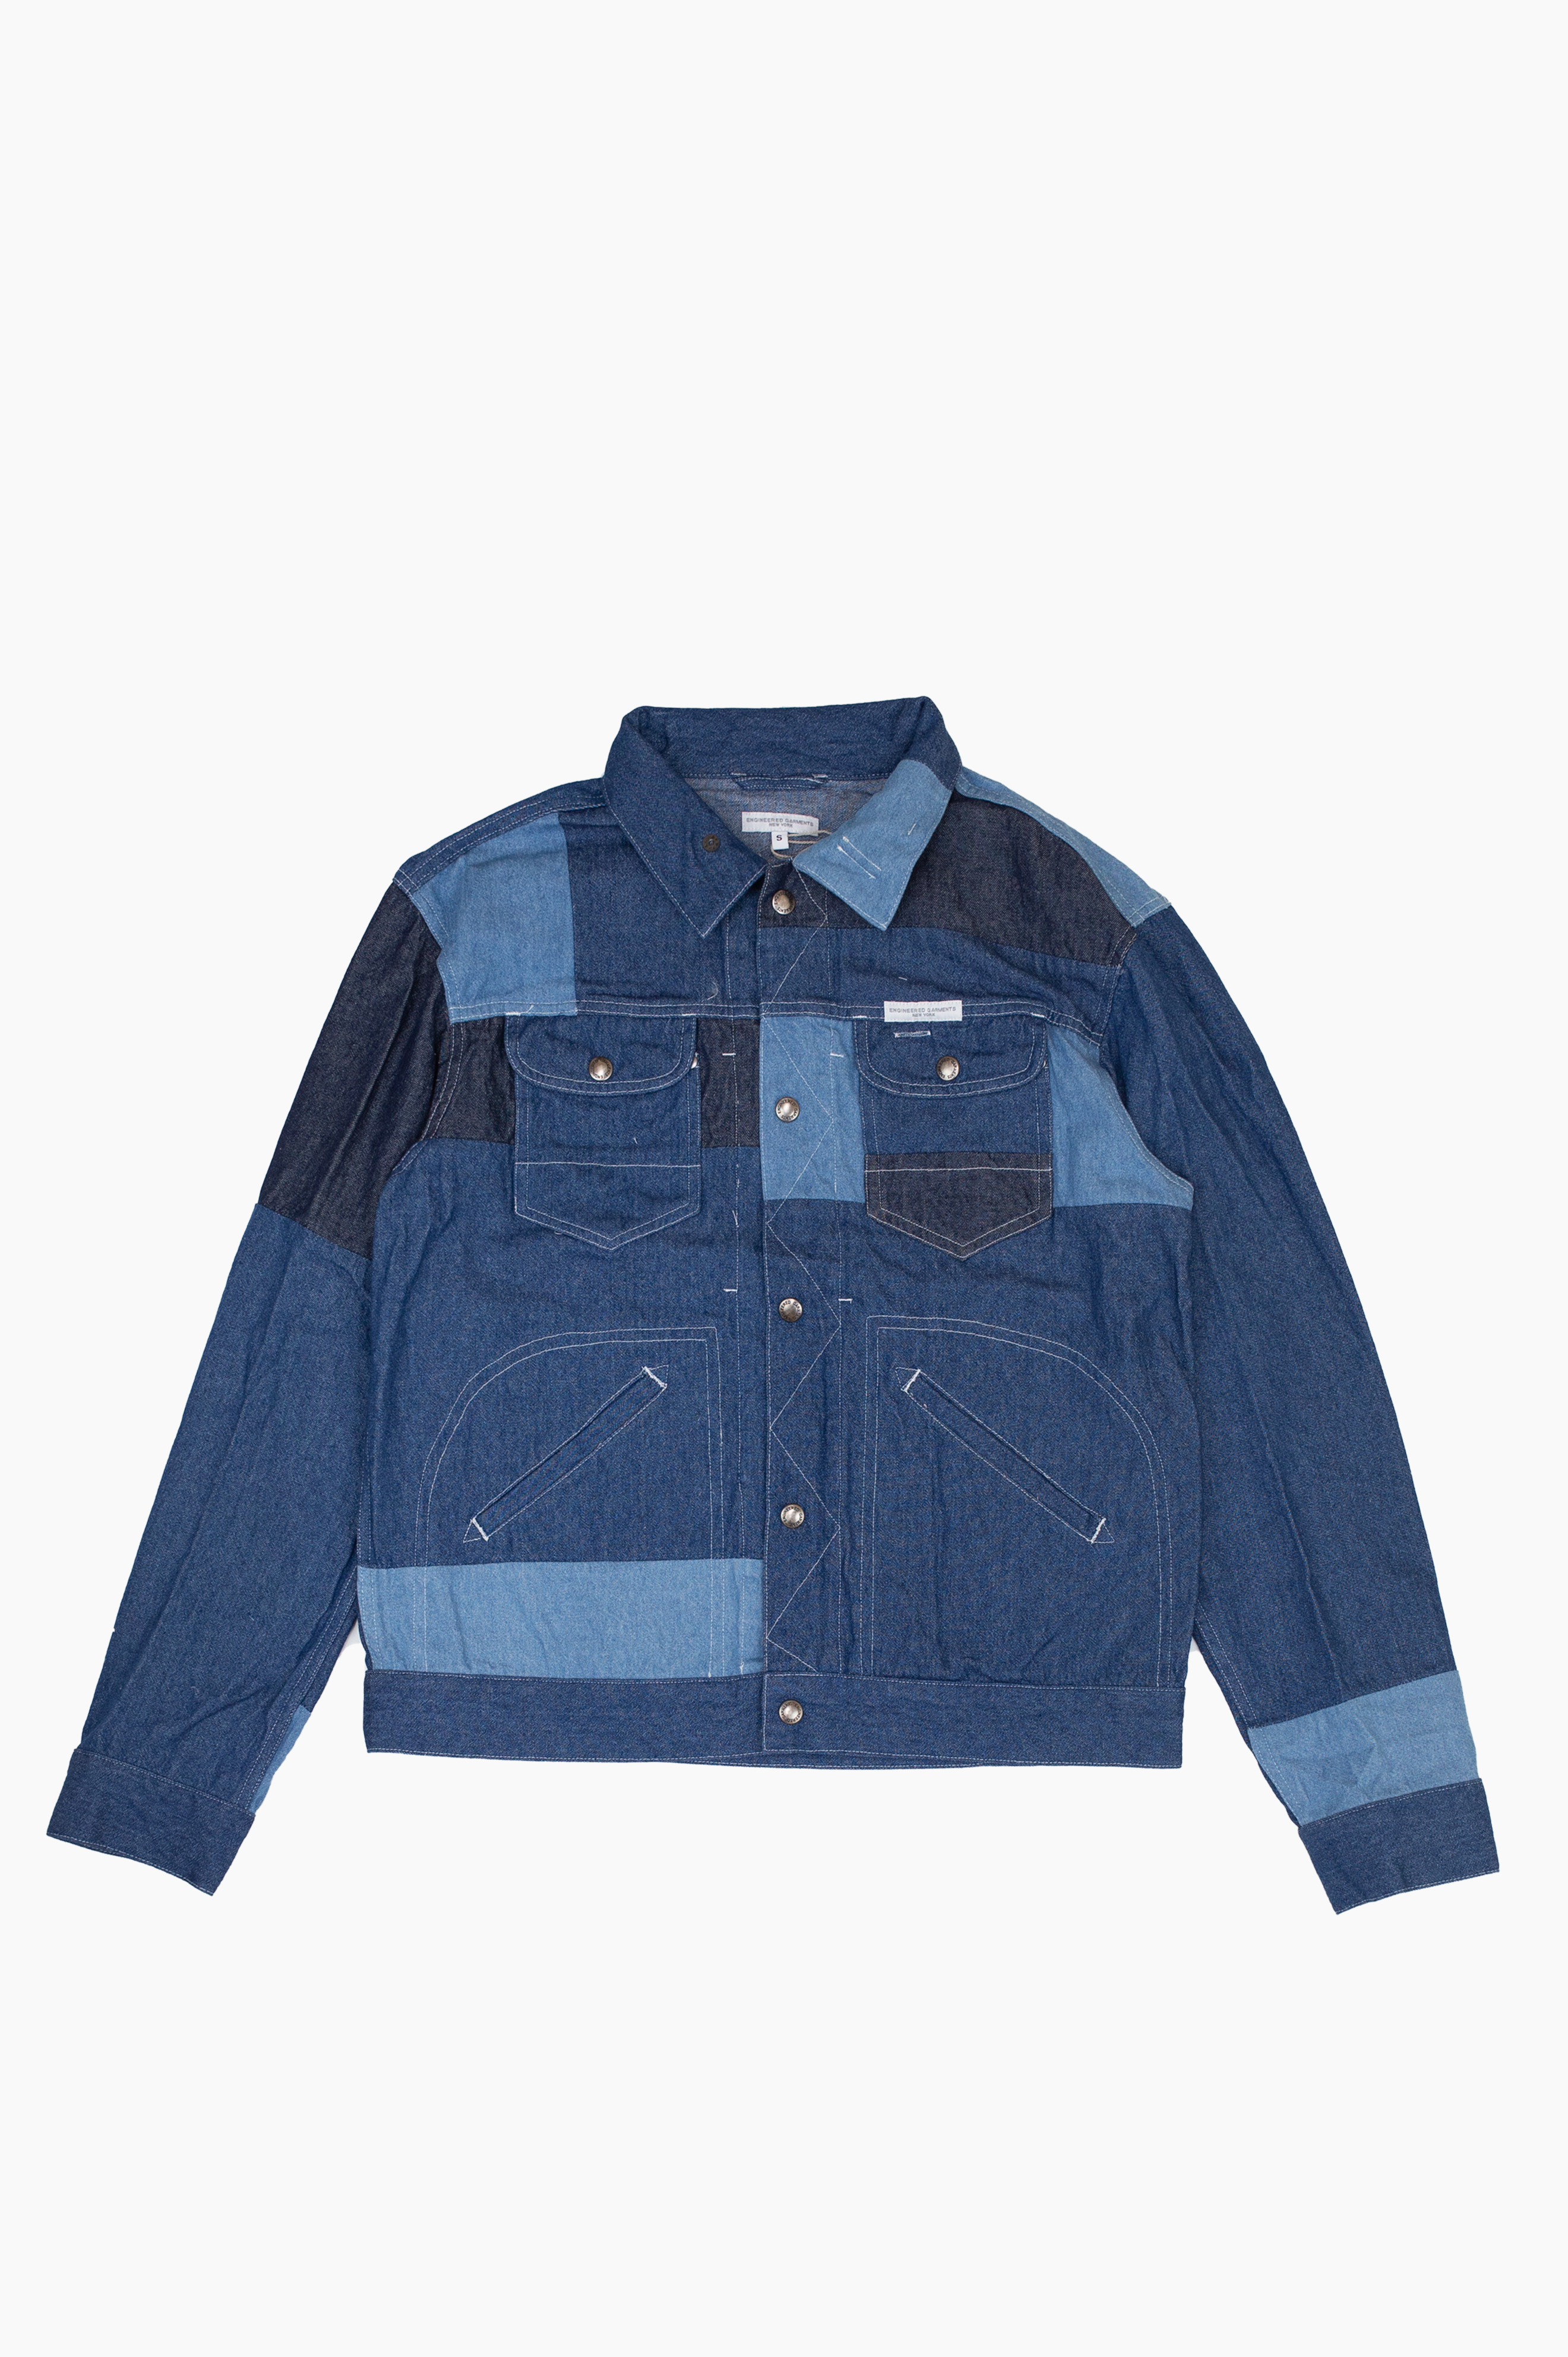 Trucker Jacket Indigo Denim